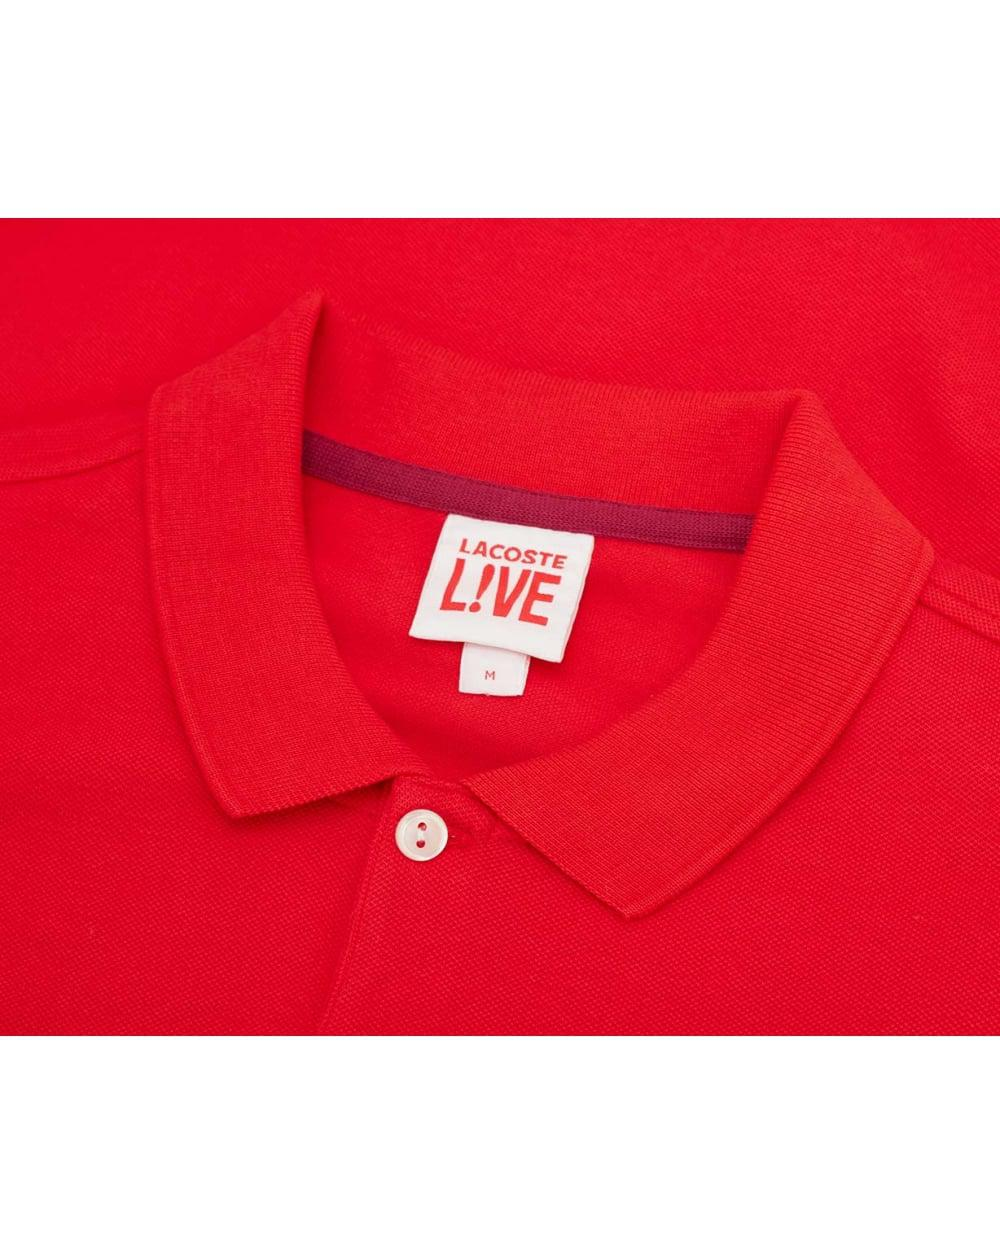 Lyst Lacoste L Ive Short Sleeved Big Croc Pique Polo In Red For Men